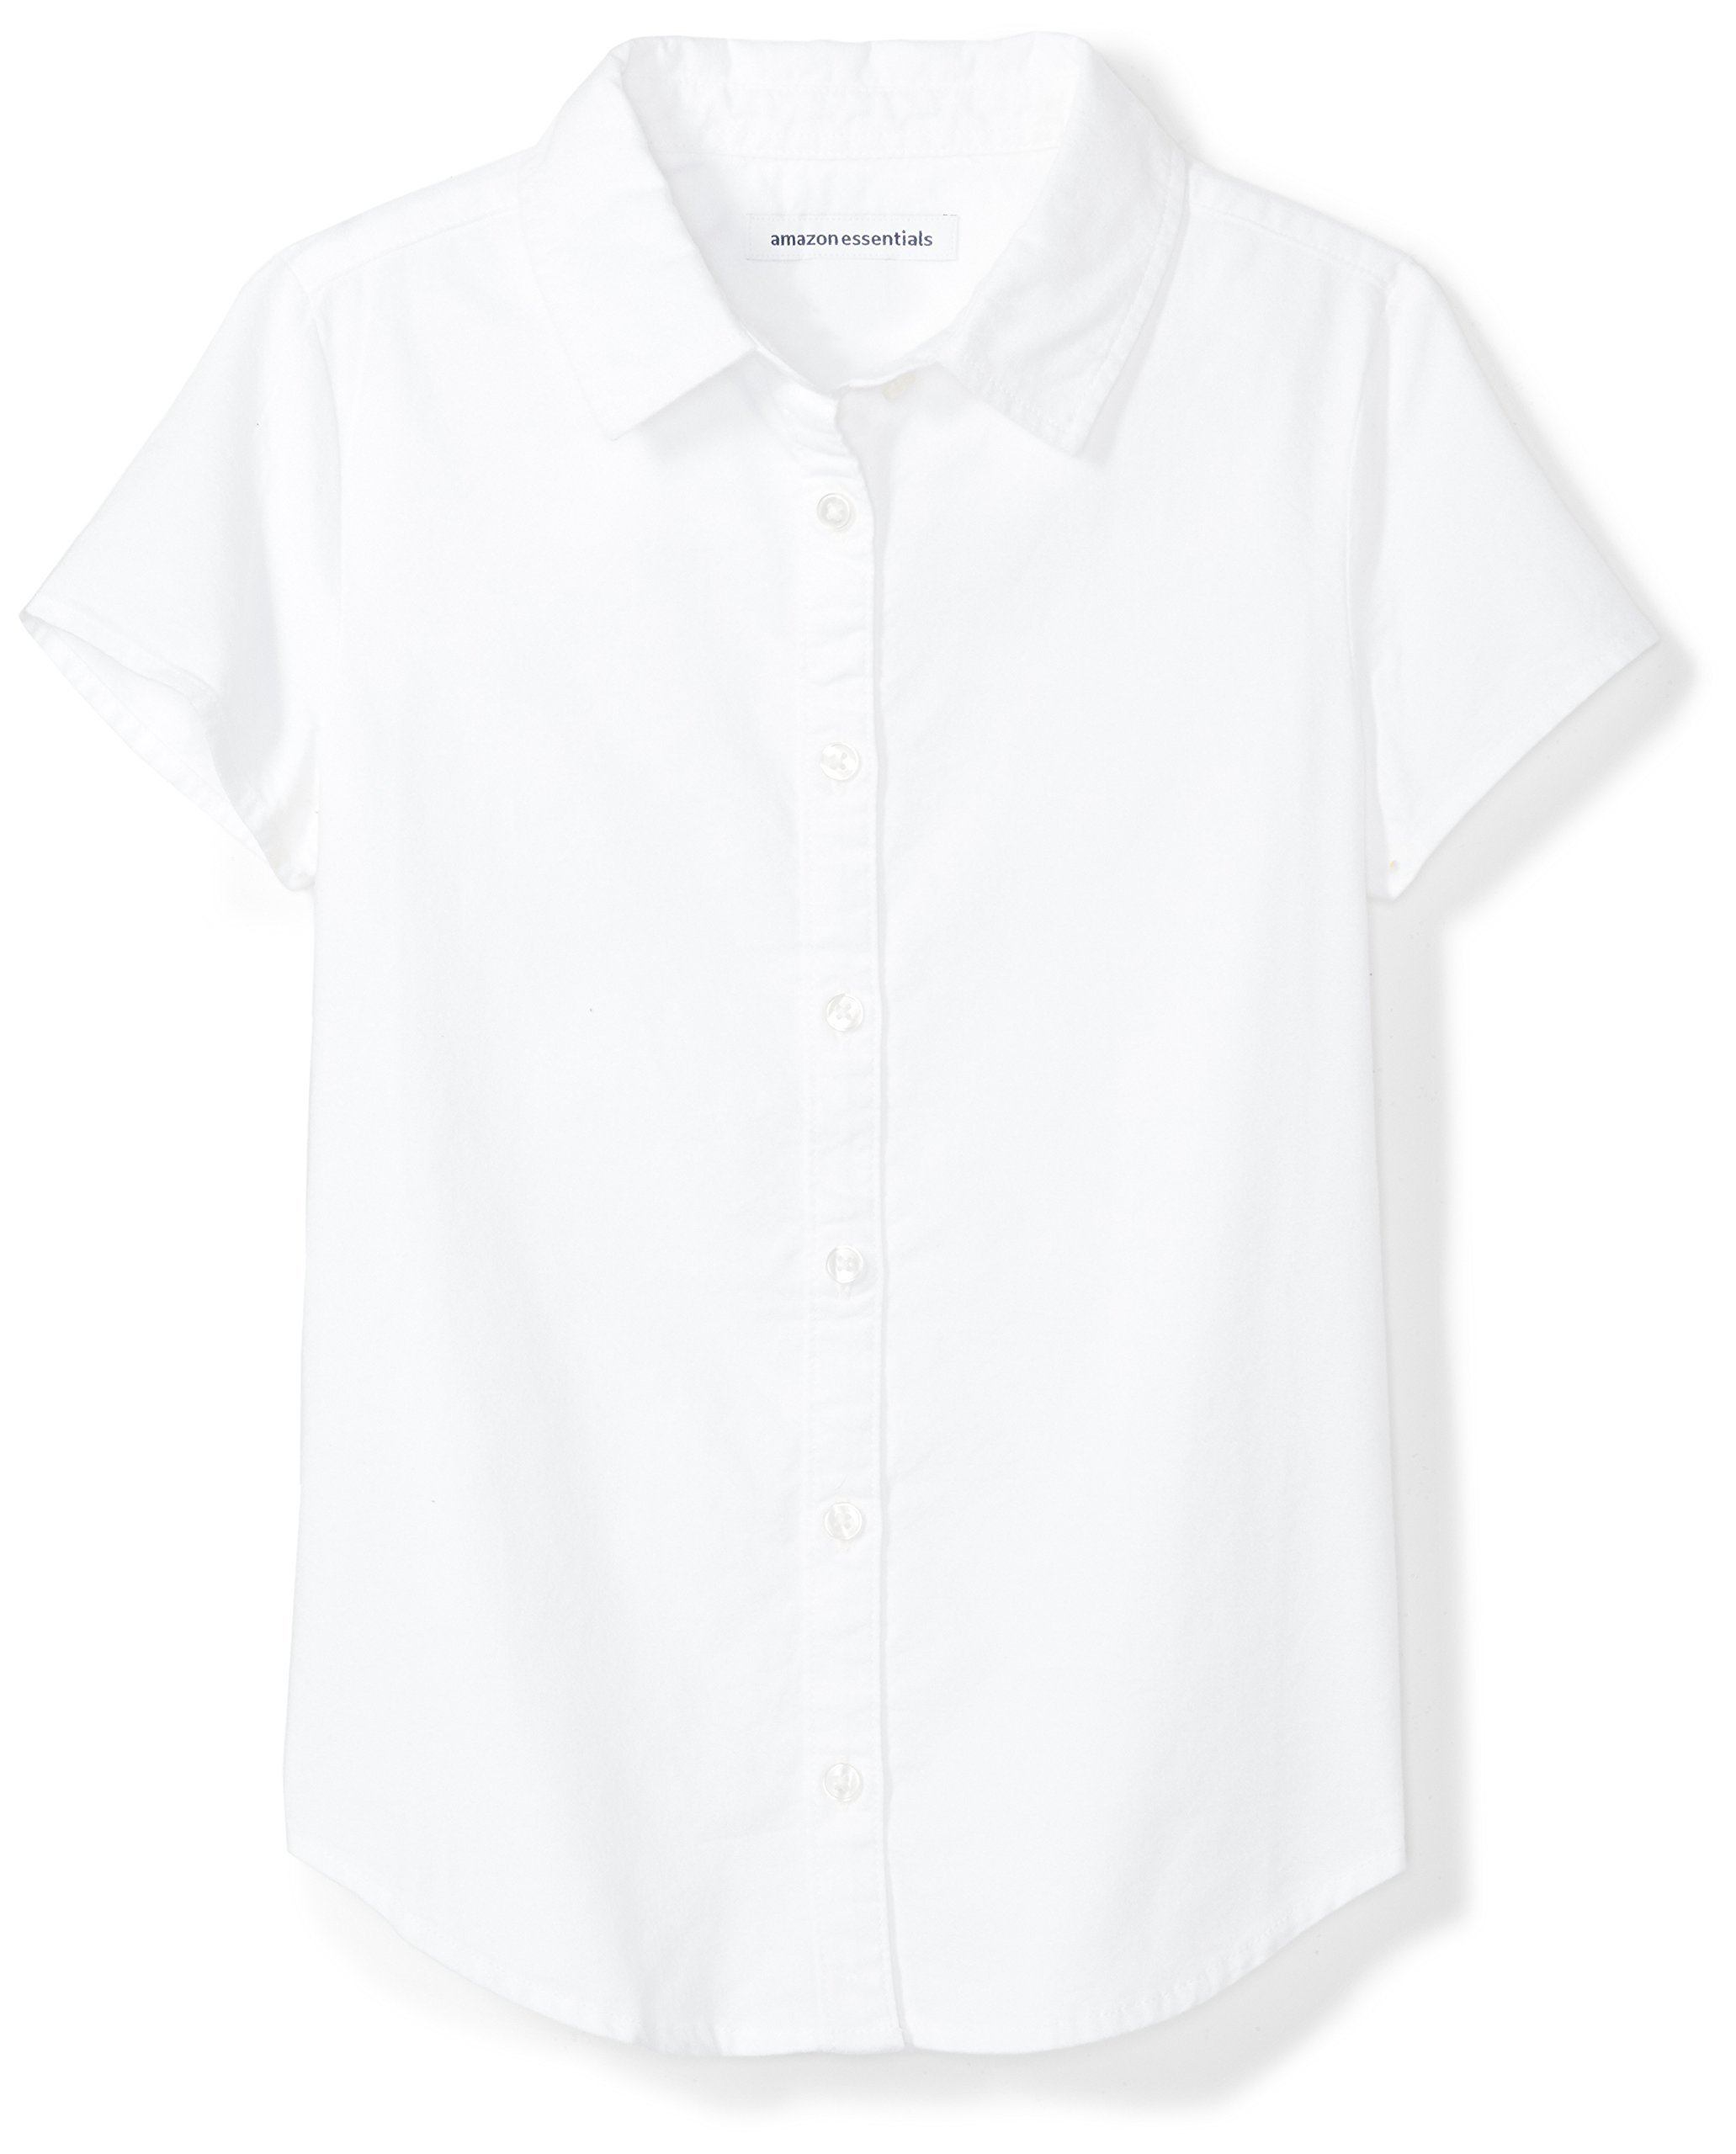 Amazon Essentials Big Girls' Short Sleeve Uniform Oxford Shirt, White, L (10) by Amazon Essentials